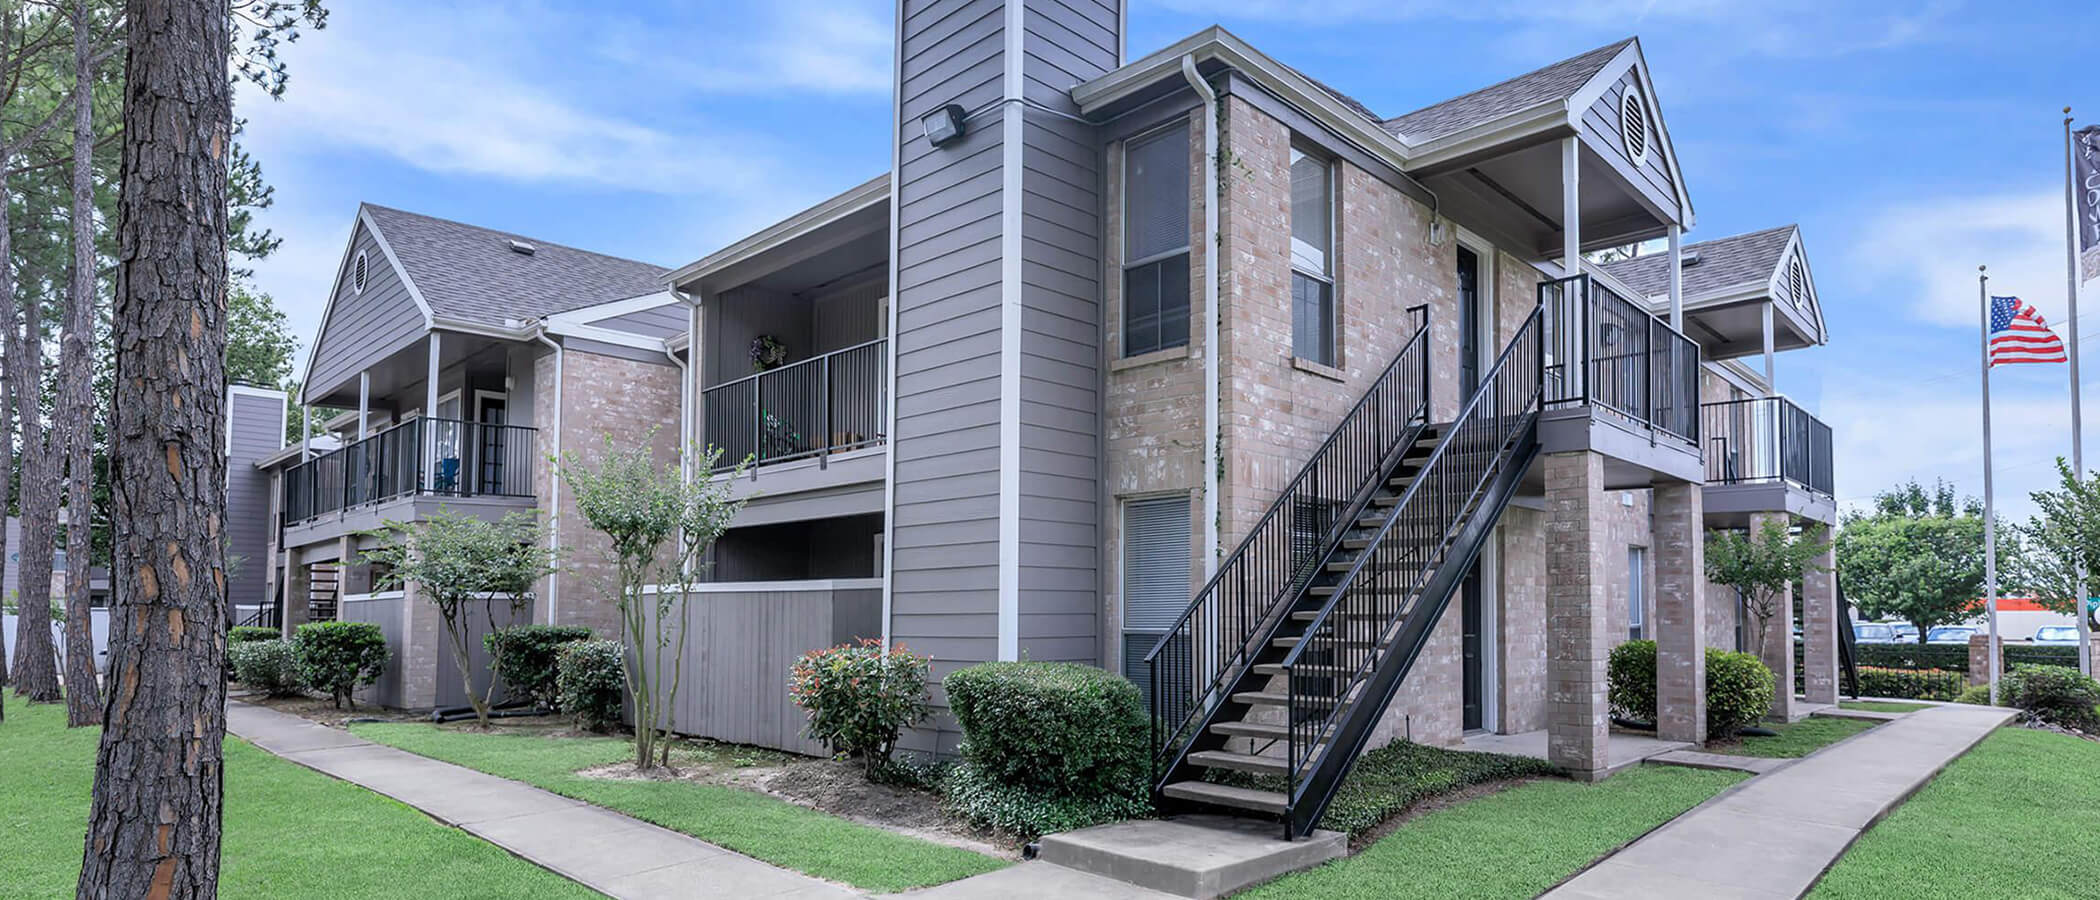 Cheap 2 Bedroom Apartments In Houston Cheap 2 Bedroom Apartments In Houston Tx Cheap 2 Bedroom